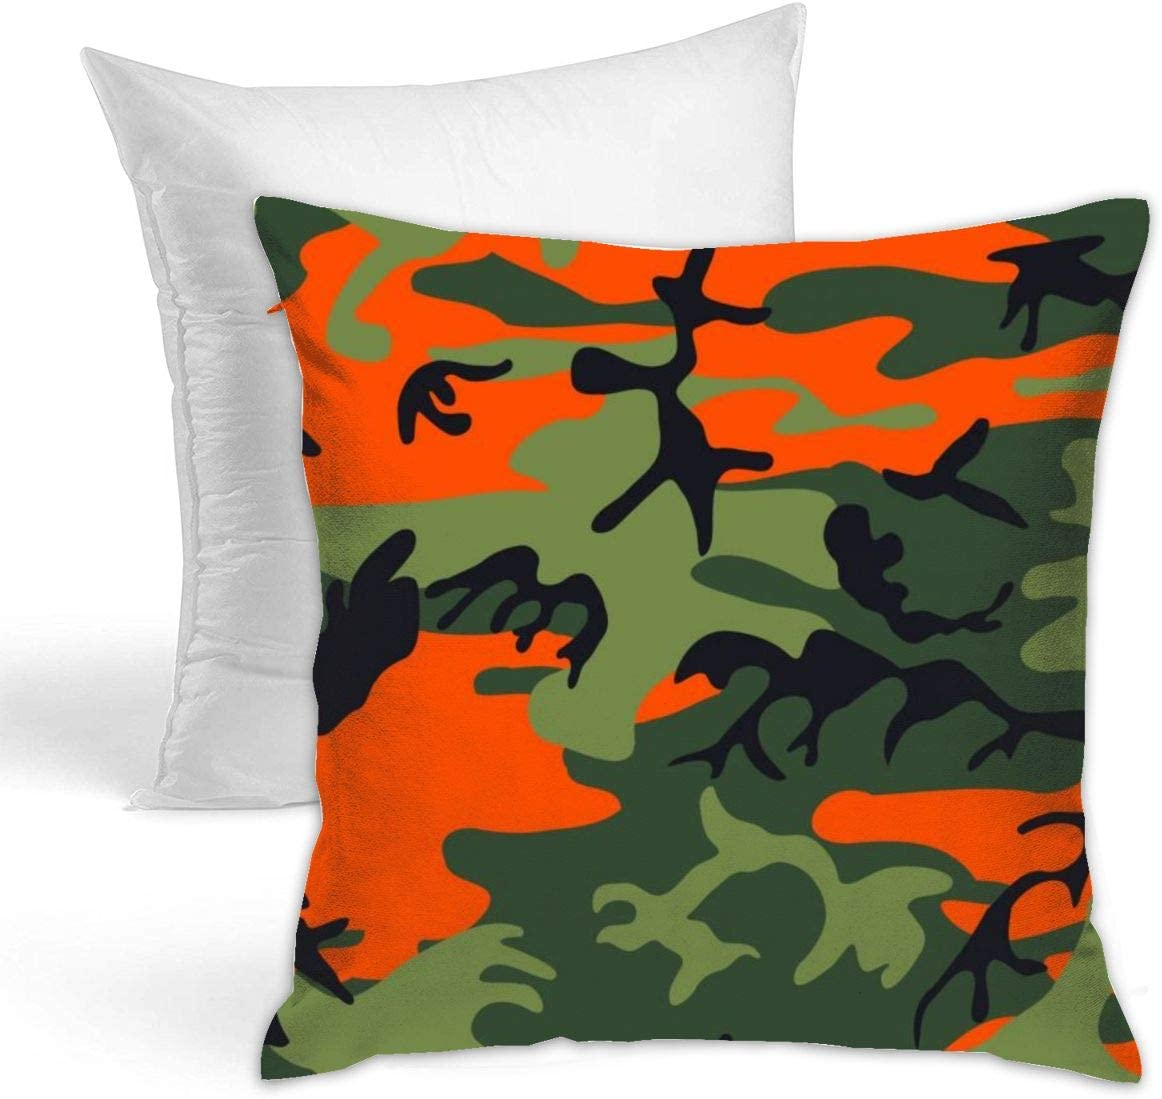 Amazon Com Doobey Camouflage Polyester Decorative Square Throw Hold Pillow Hold For Sofa Bedroom Car Home Decor 18 X18 45x45cm Home Kitchen